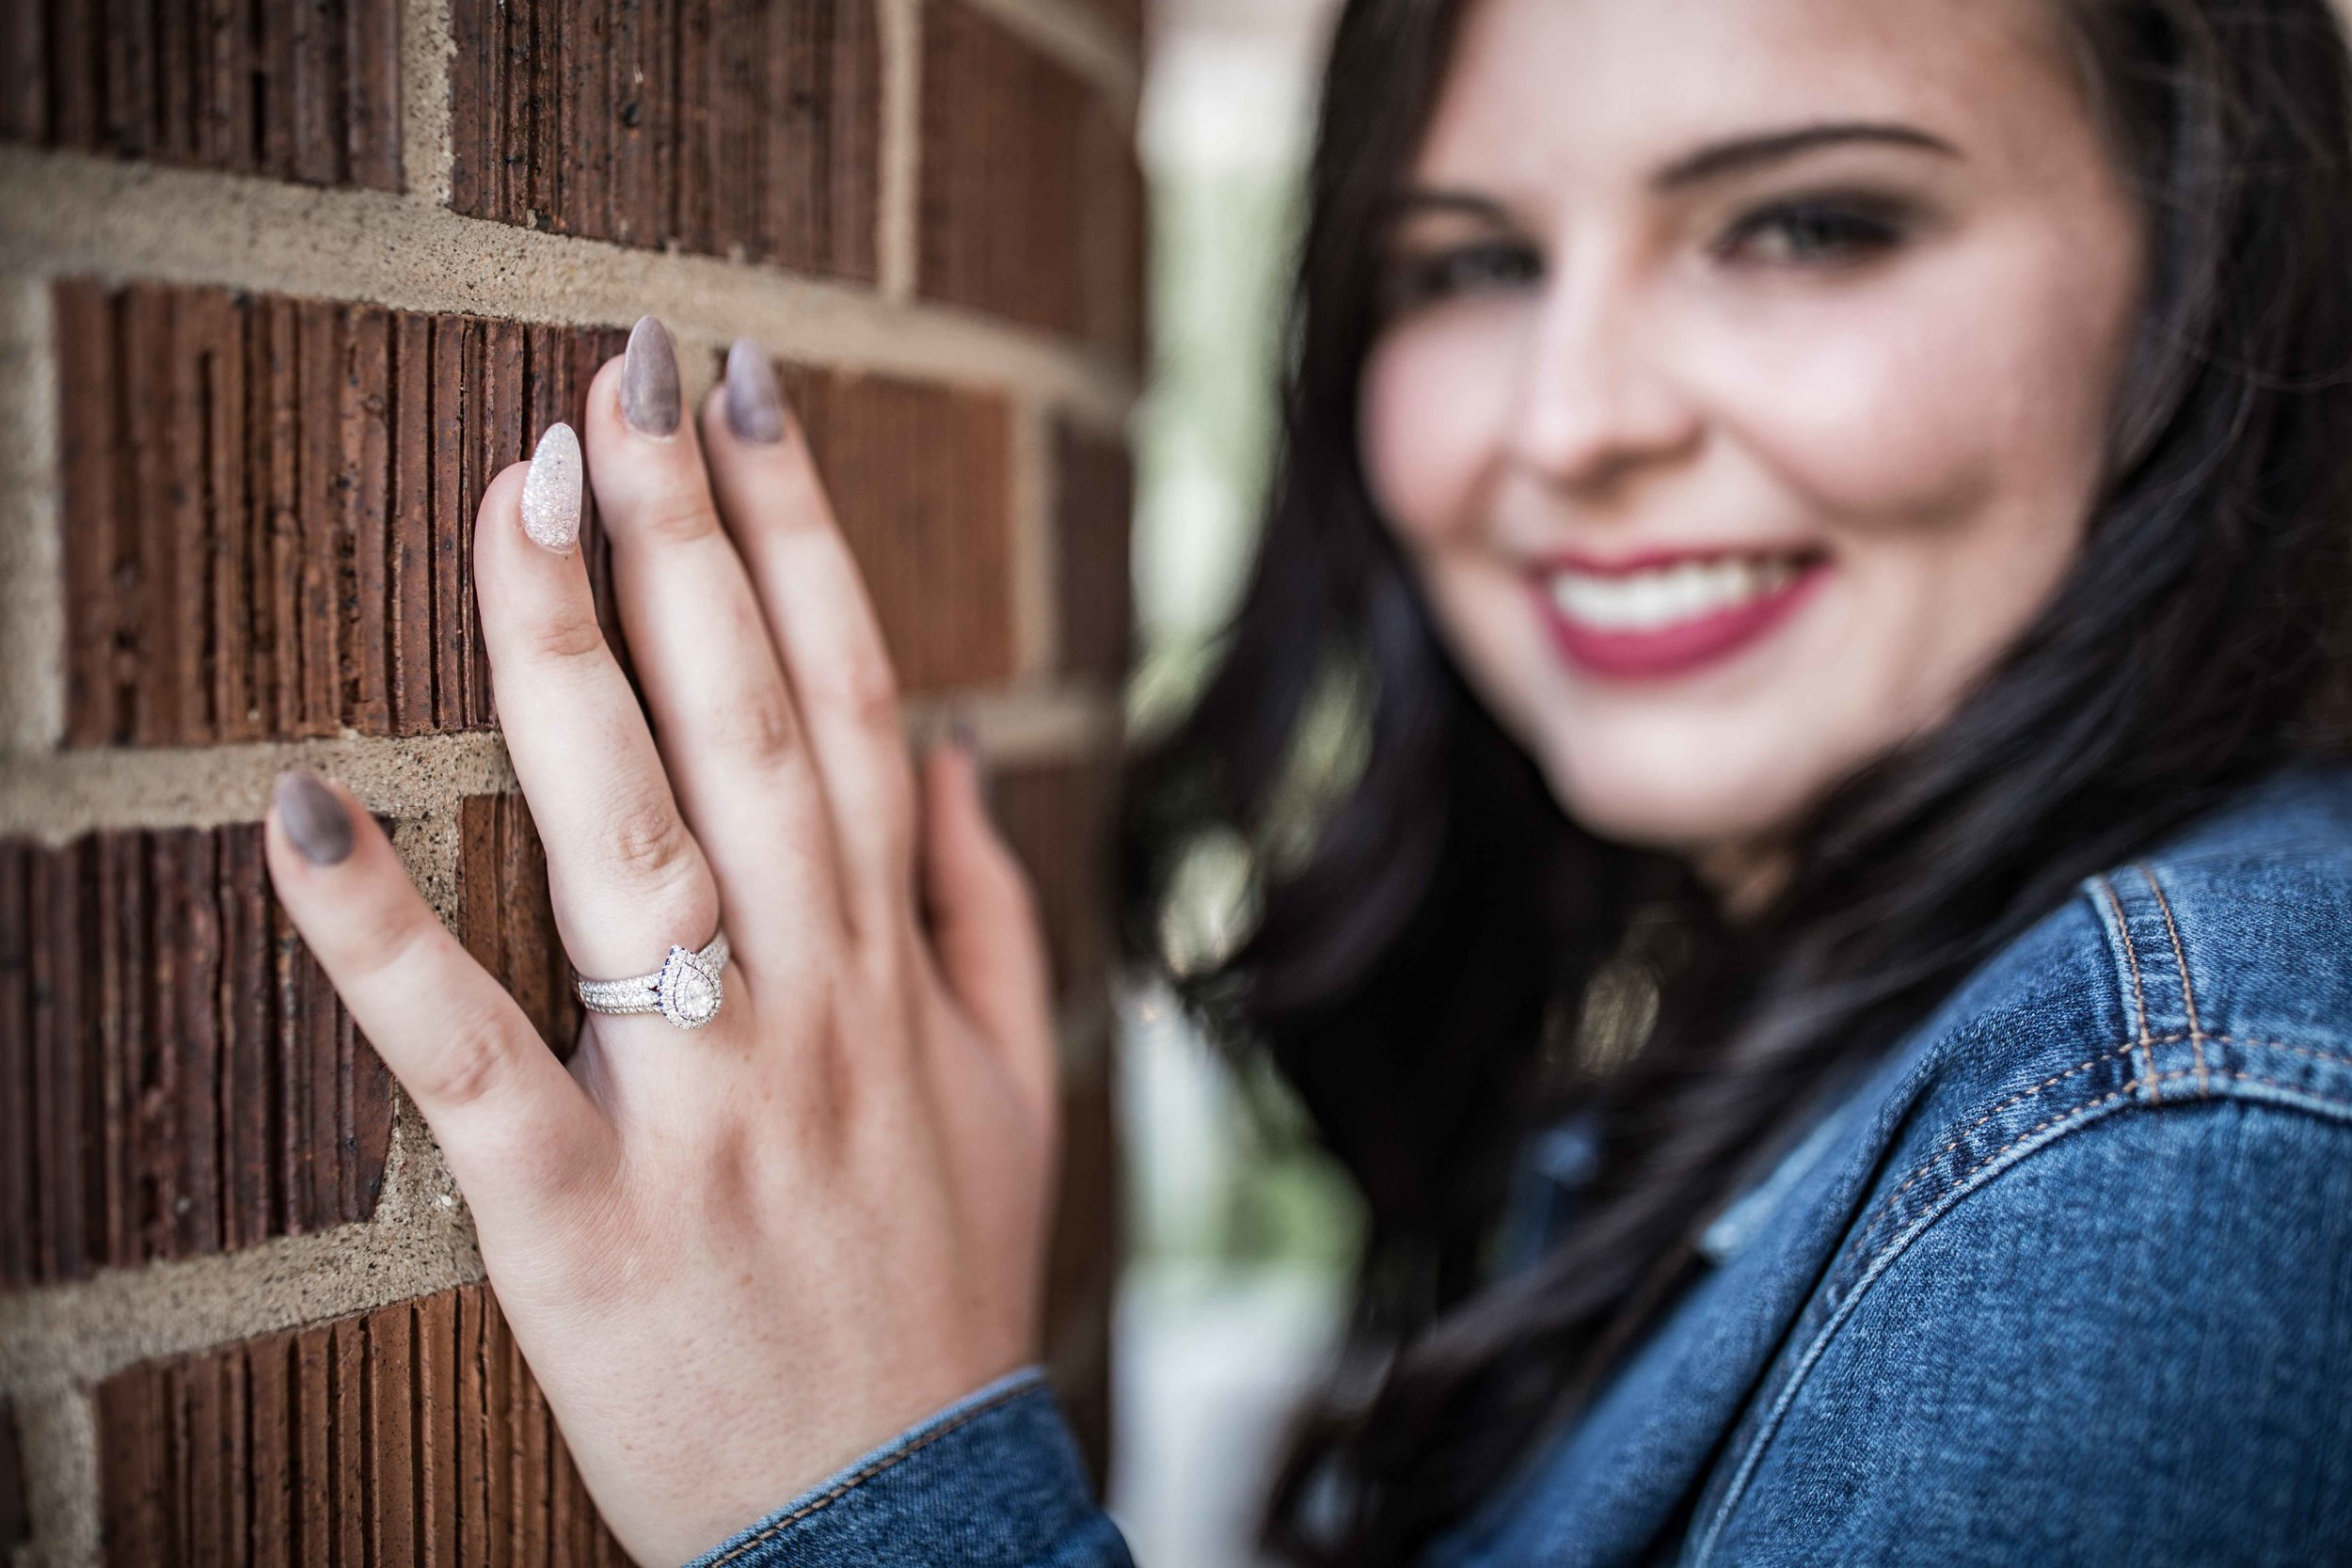 she shows off her engagement ring against a brick pillar